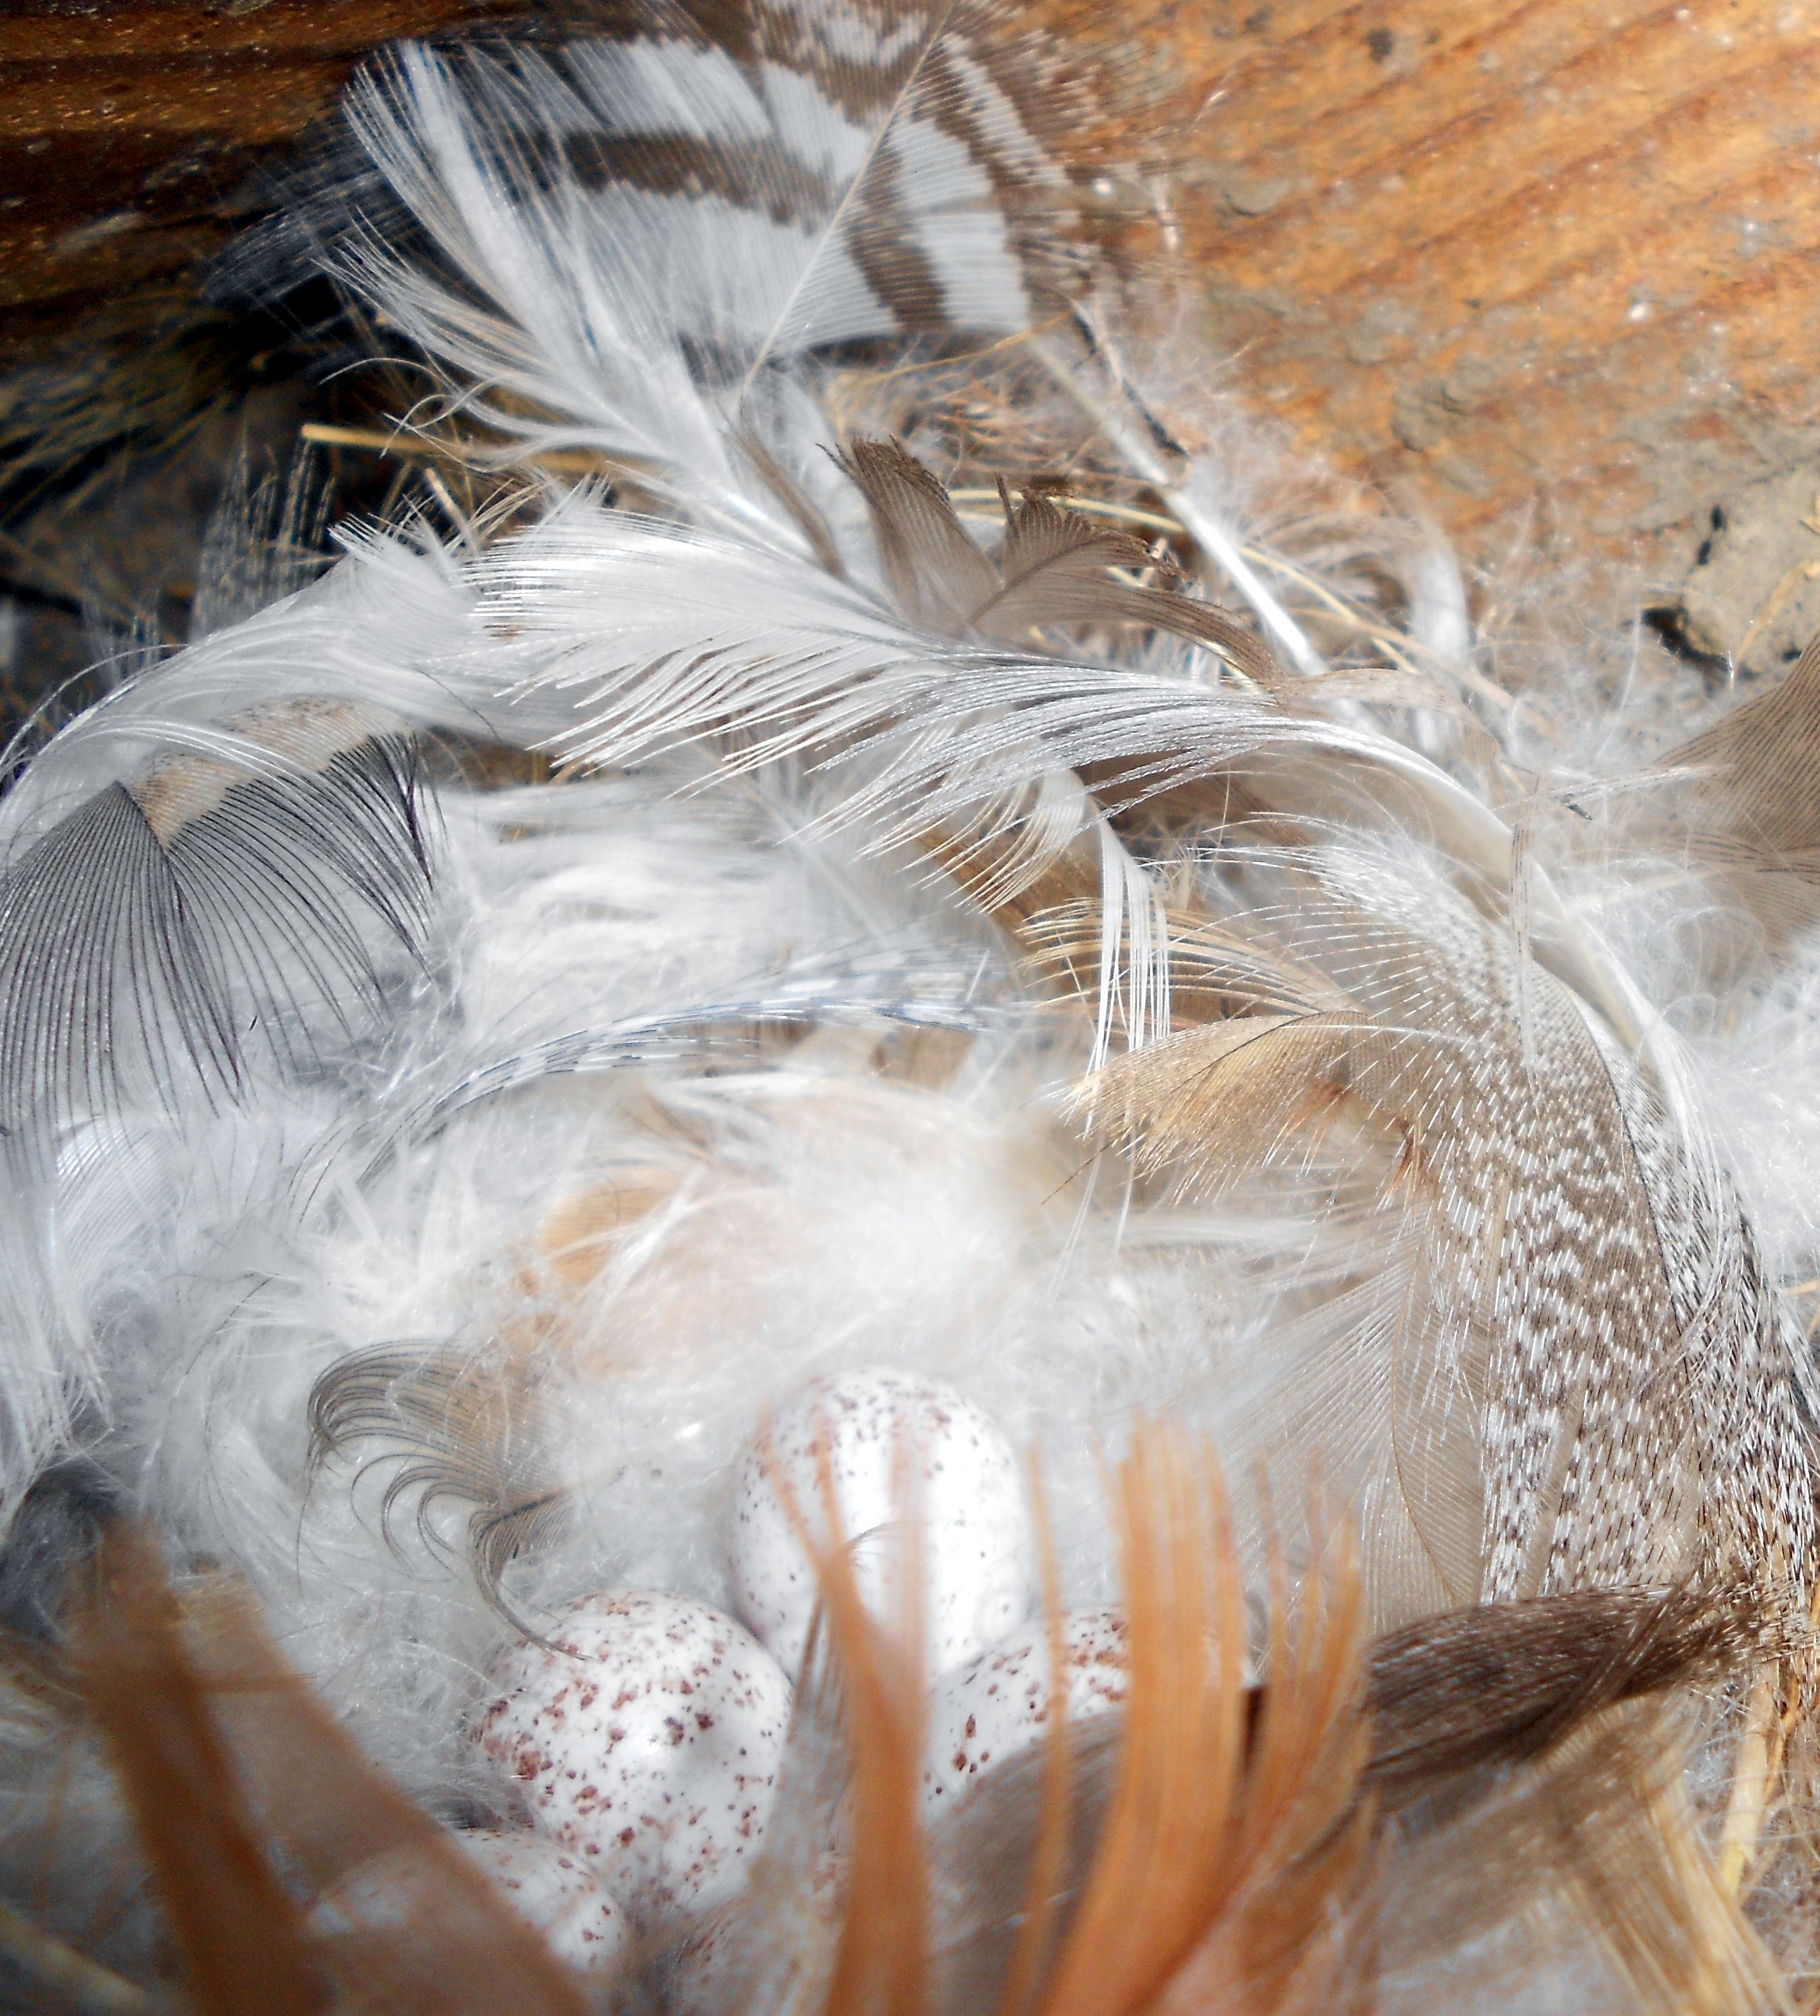 Pin by Heather Woods on Feathers and Nests | Pinterest